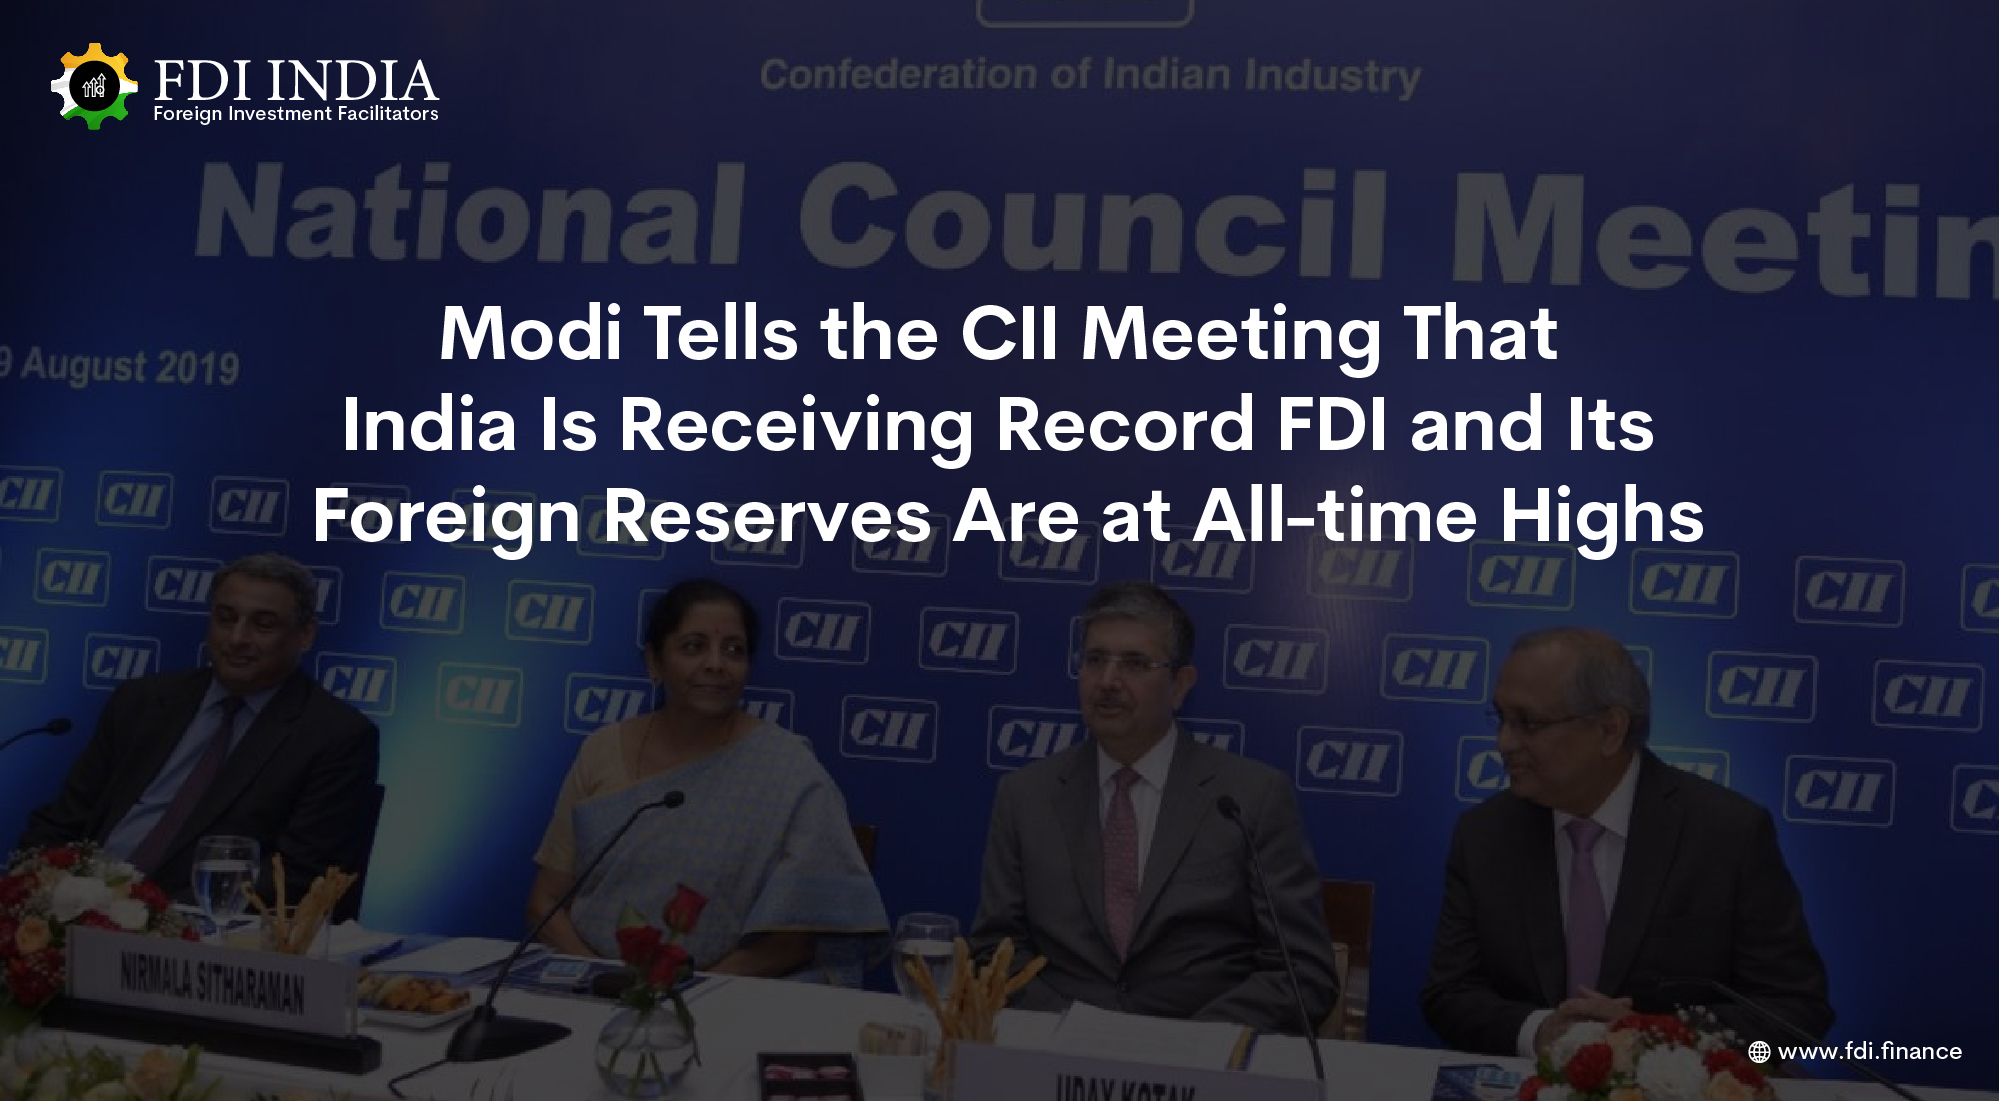 Modi Tells the CII Meeting That India Is Receiving Record FDI and Its Foreign Reserves Are at All-time Highs